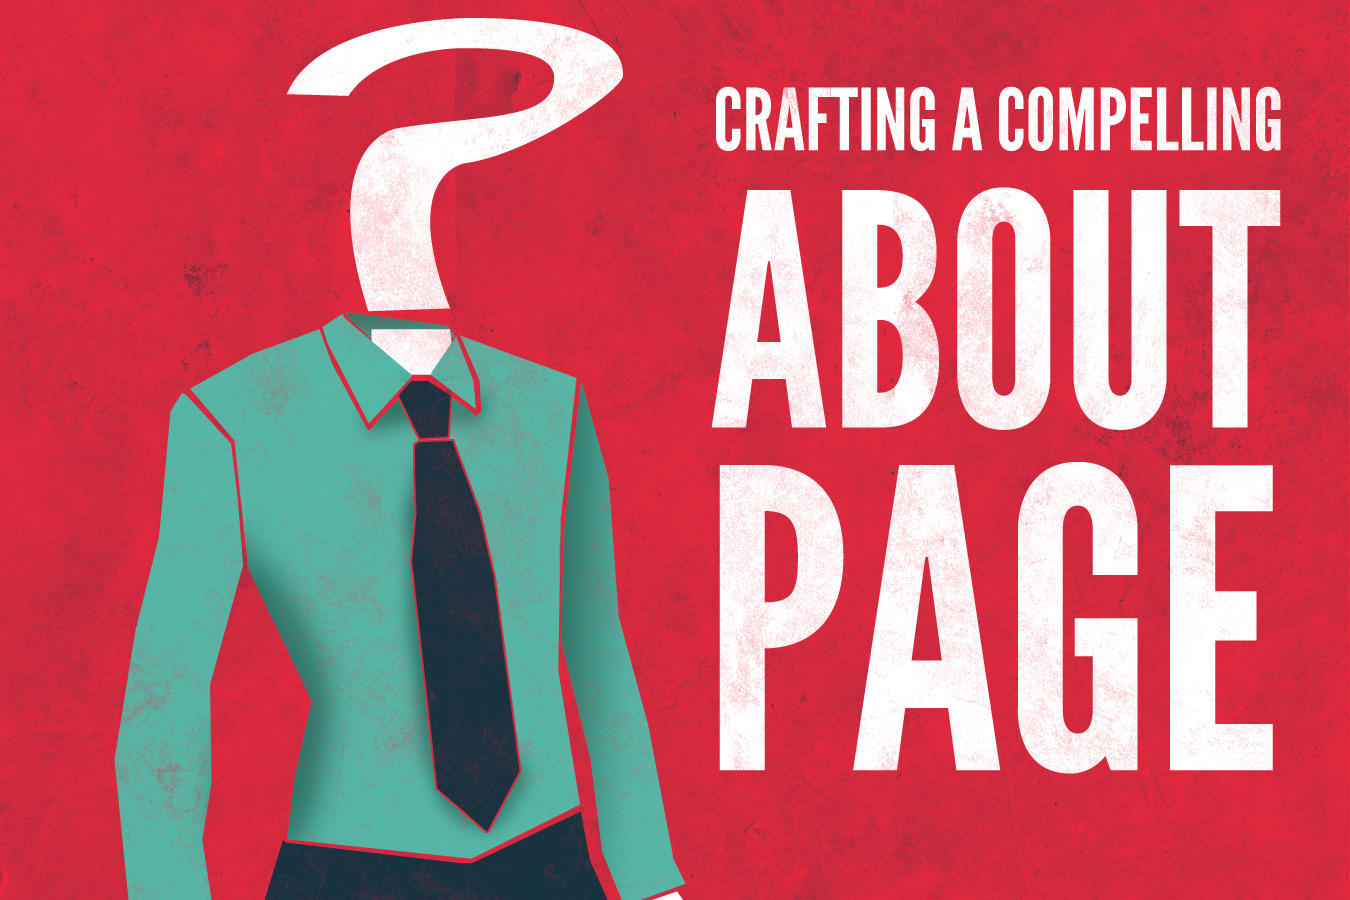 Crafting a Compelling About Us Page